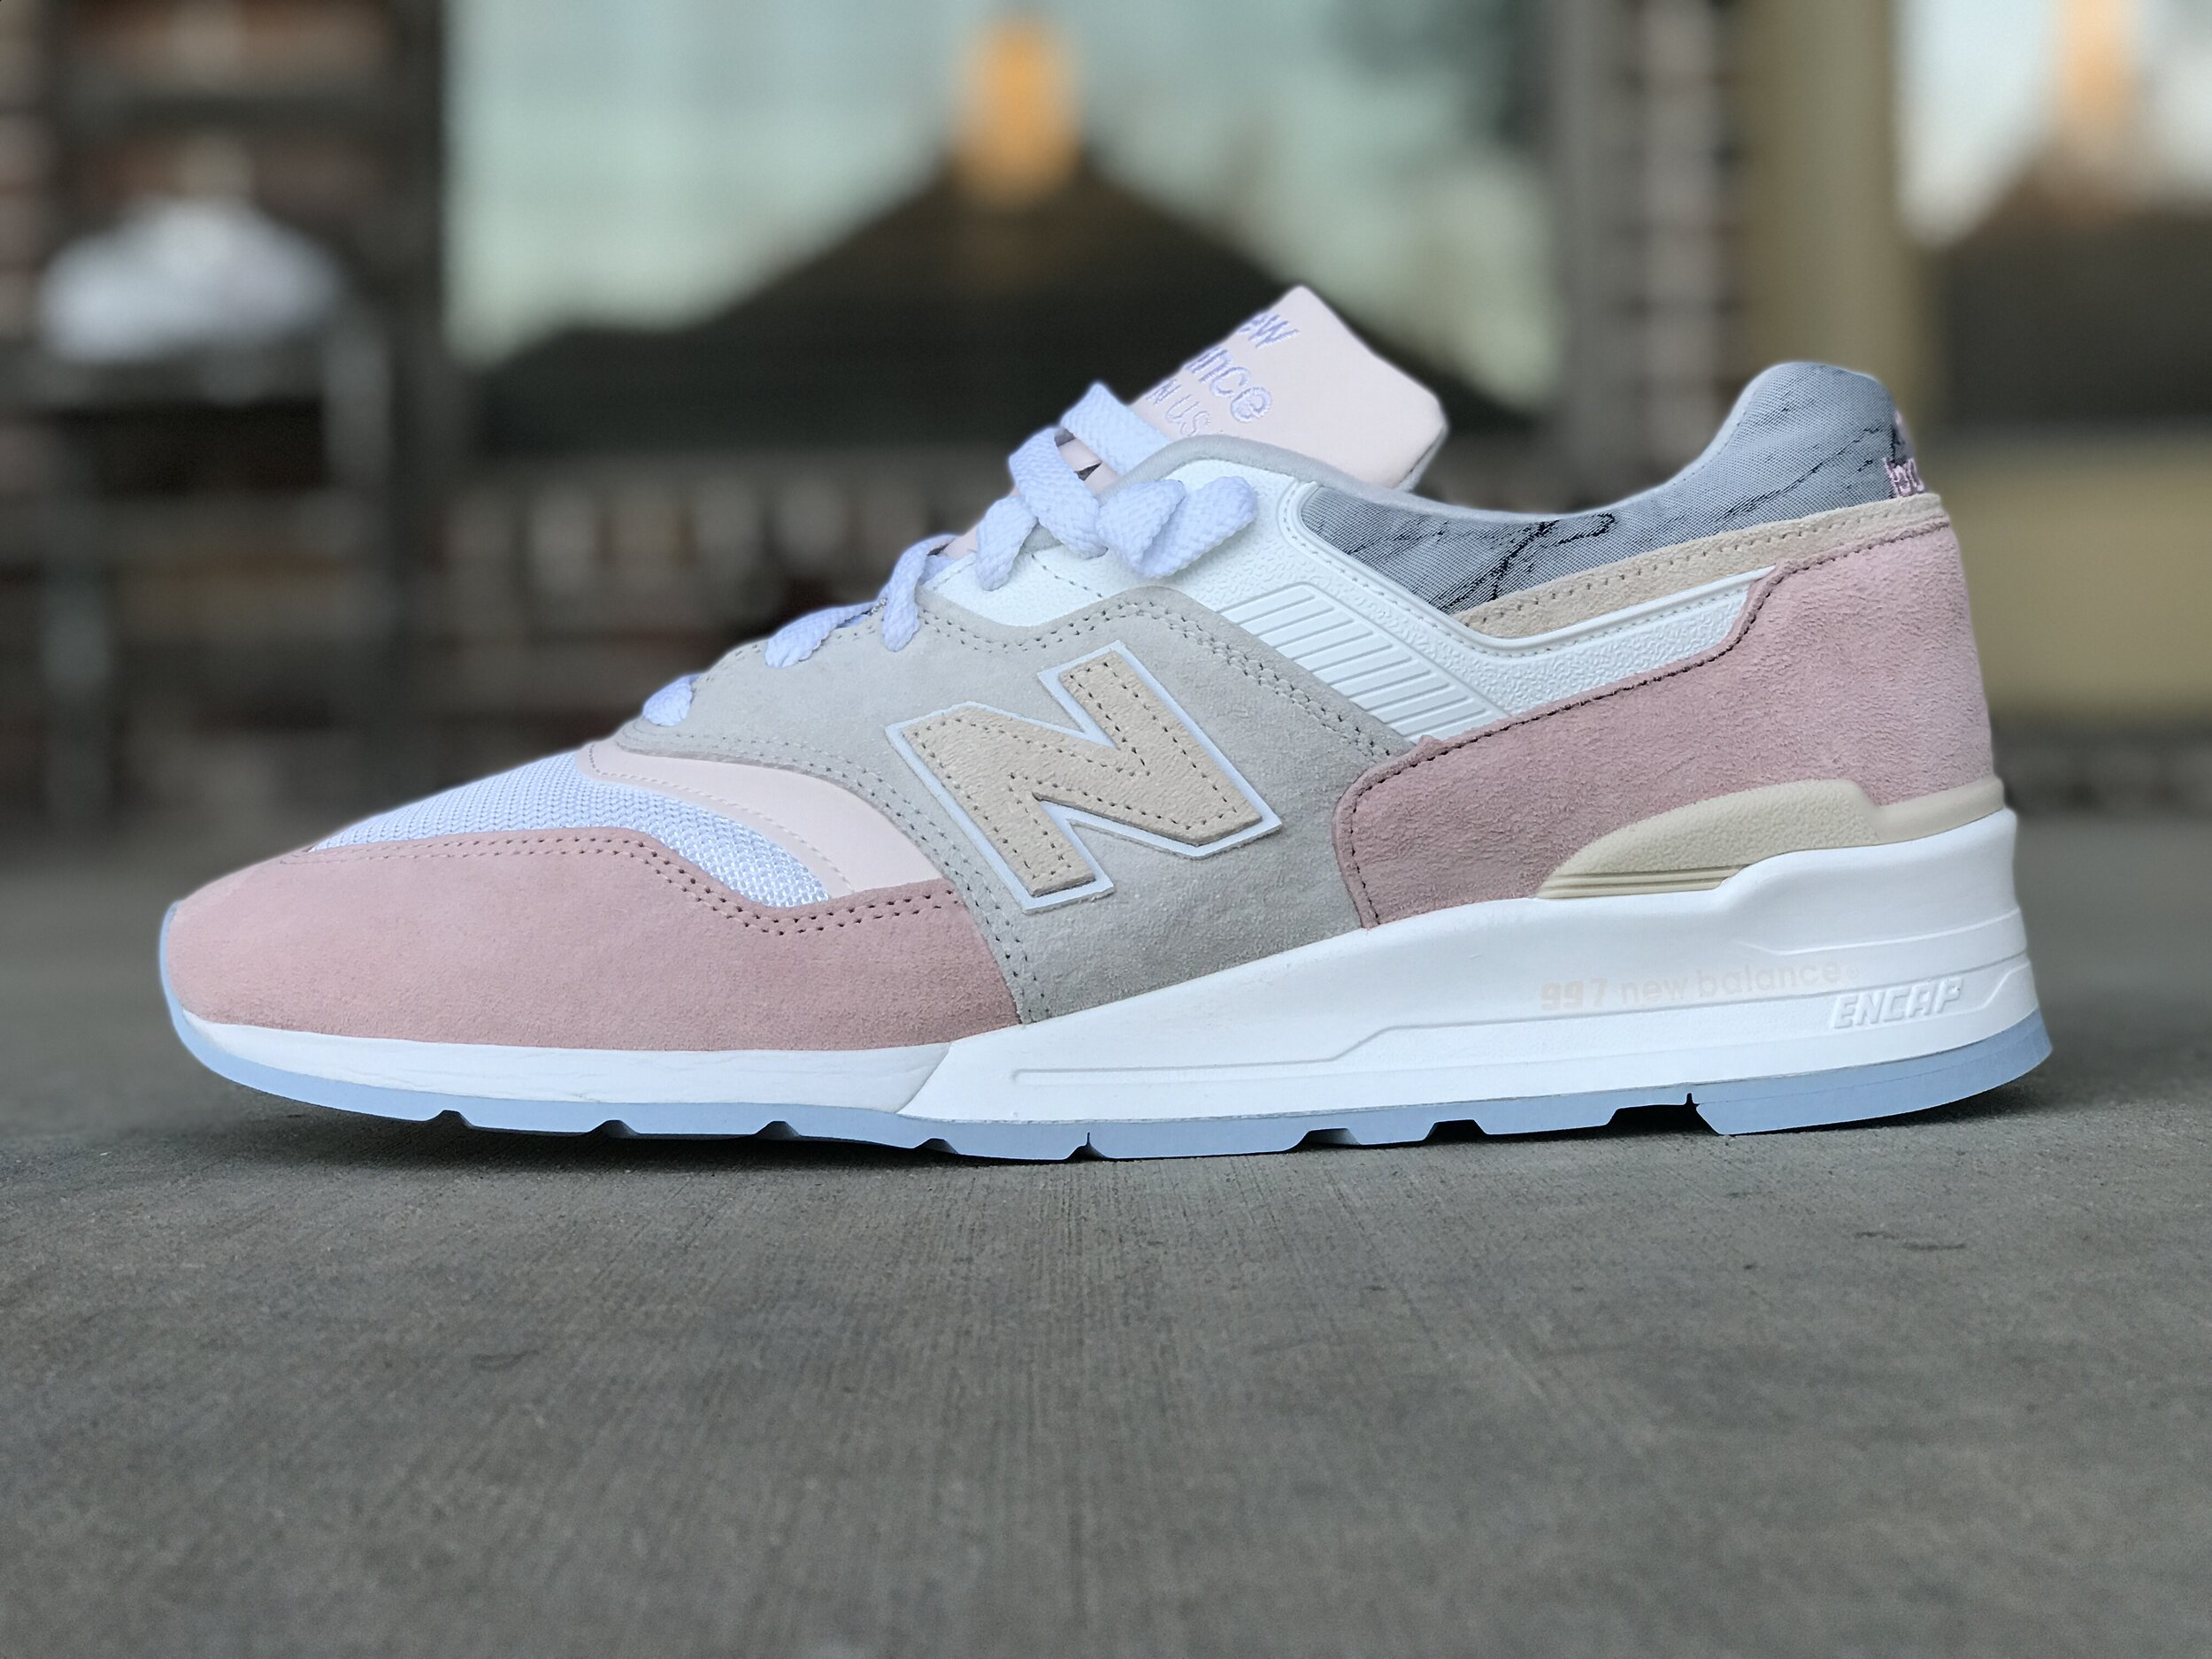 A Detailed Look At The New Balance 997